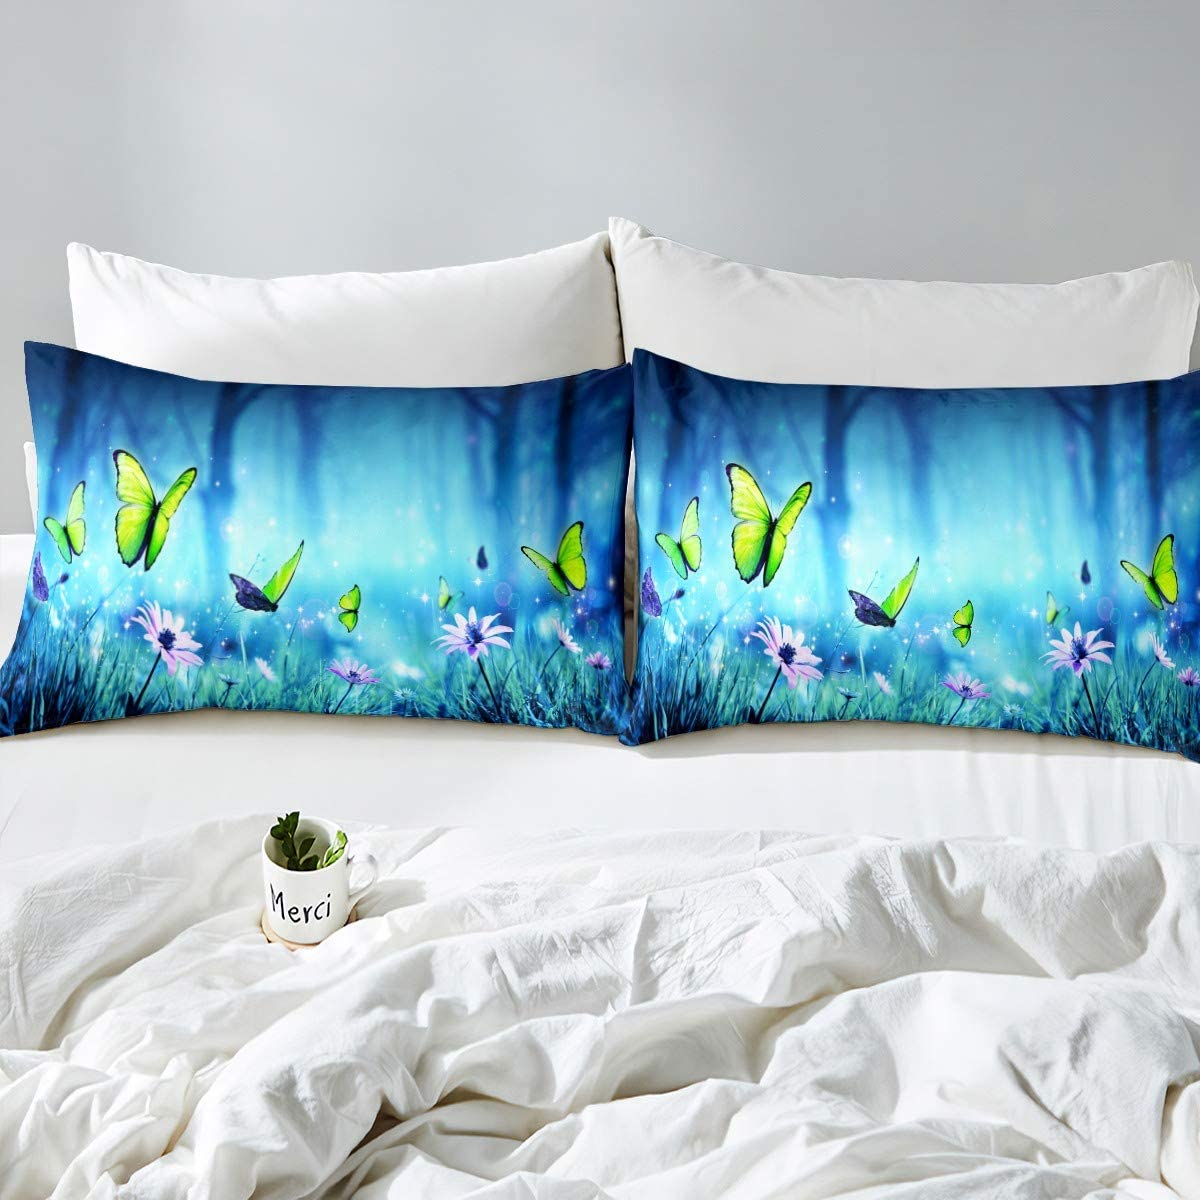 Feelyou Natural Scenery Bedding Set Lakes and Mountains Bed Sheet Set for Kids Boys Girls Teens Nature Theme Luxury Microfiber Fitted Sheet Decor 2Pcs Bed Cover Twin Size Green Blue